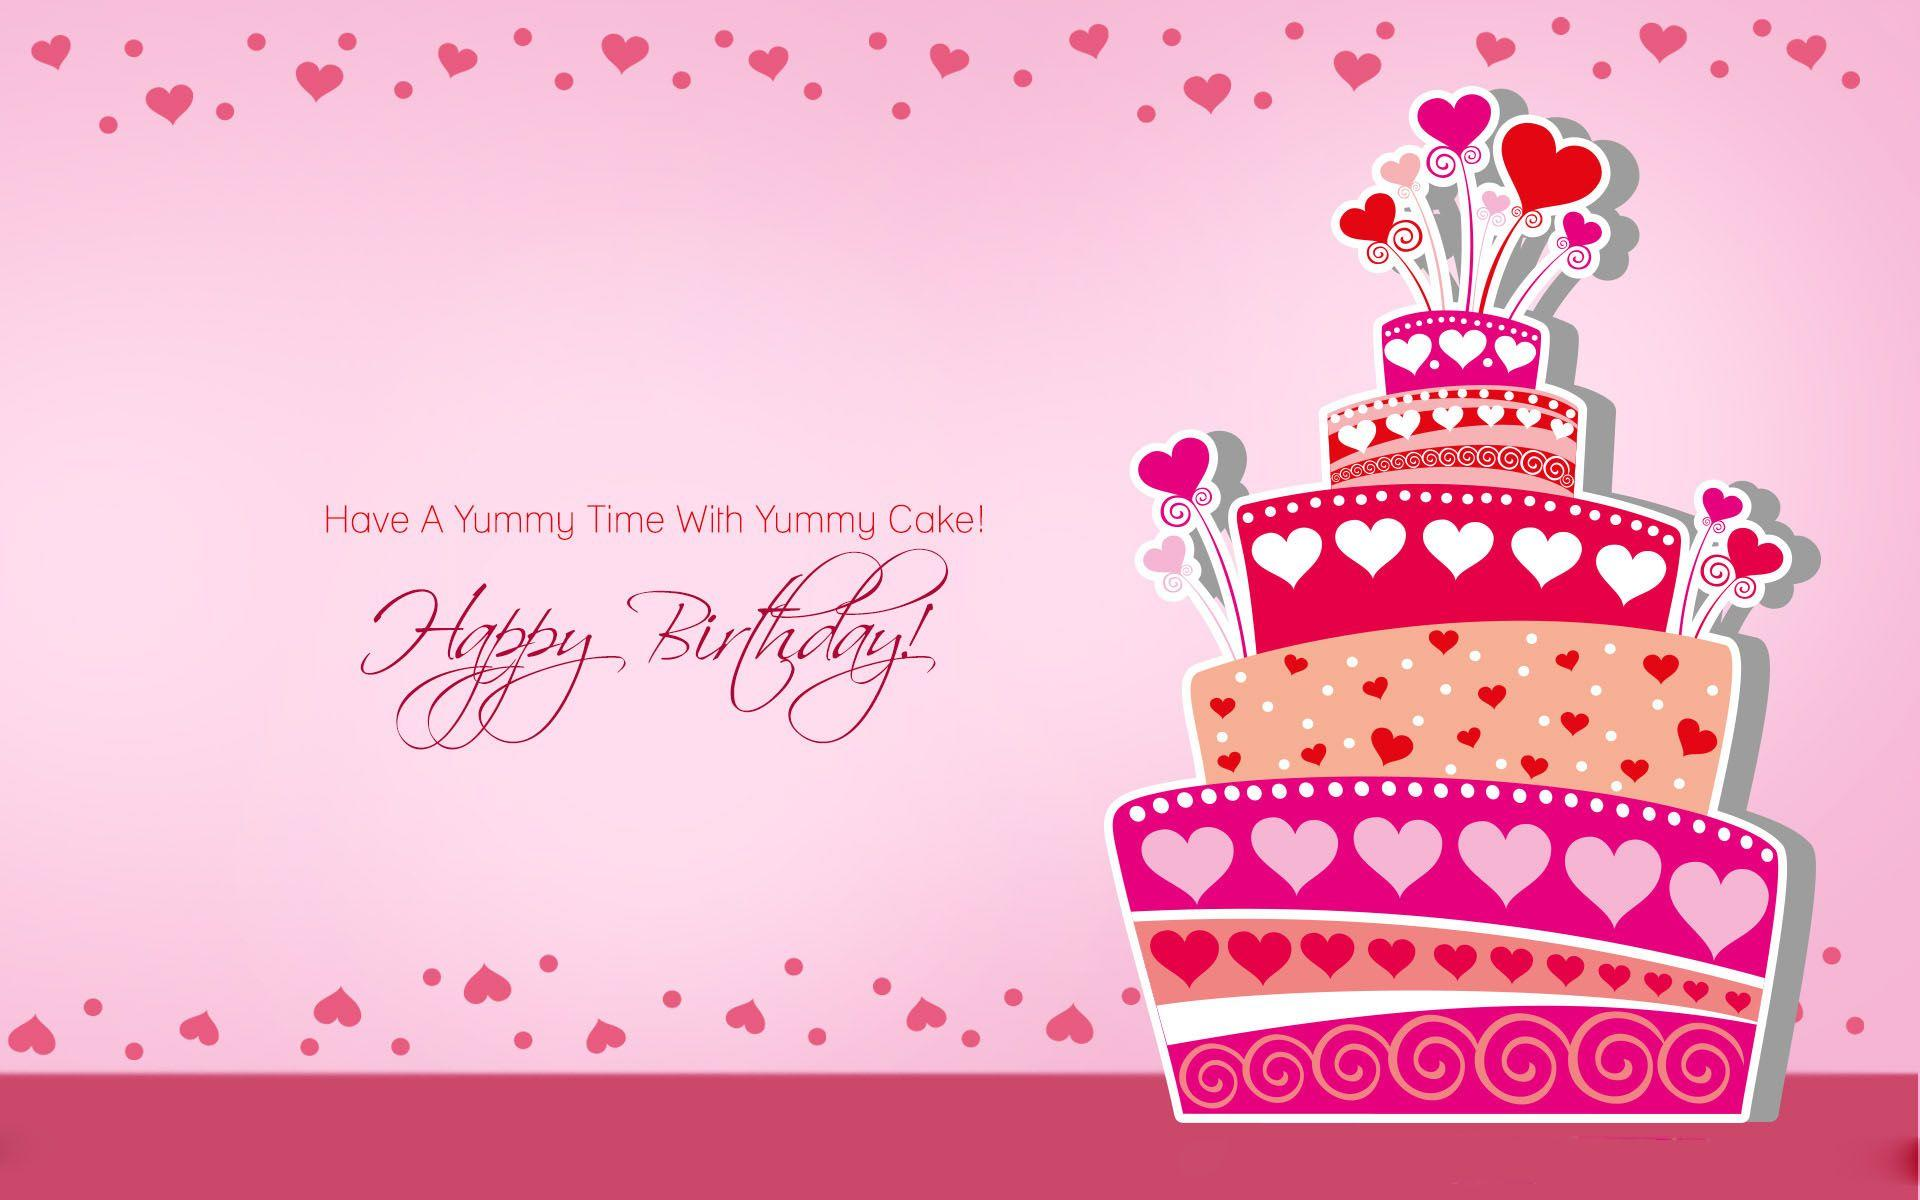 Love Birthday Wishes Wallpaper : Happy Birthday Wallpapers Image - Wallpaper cave